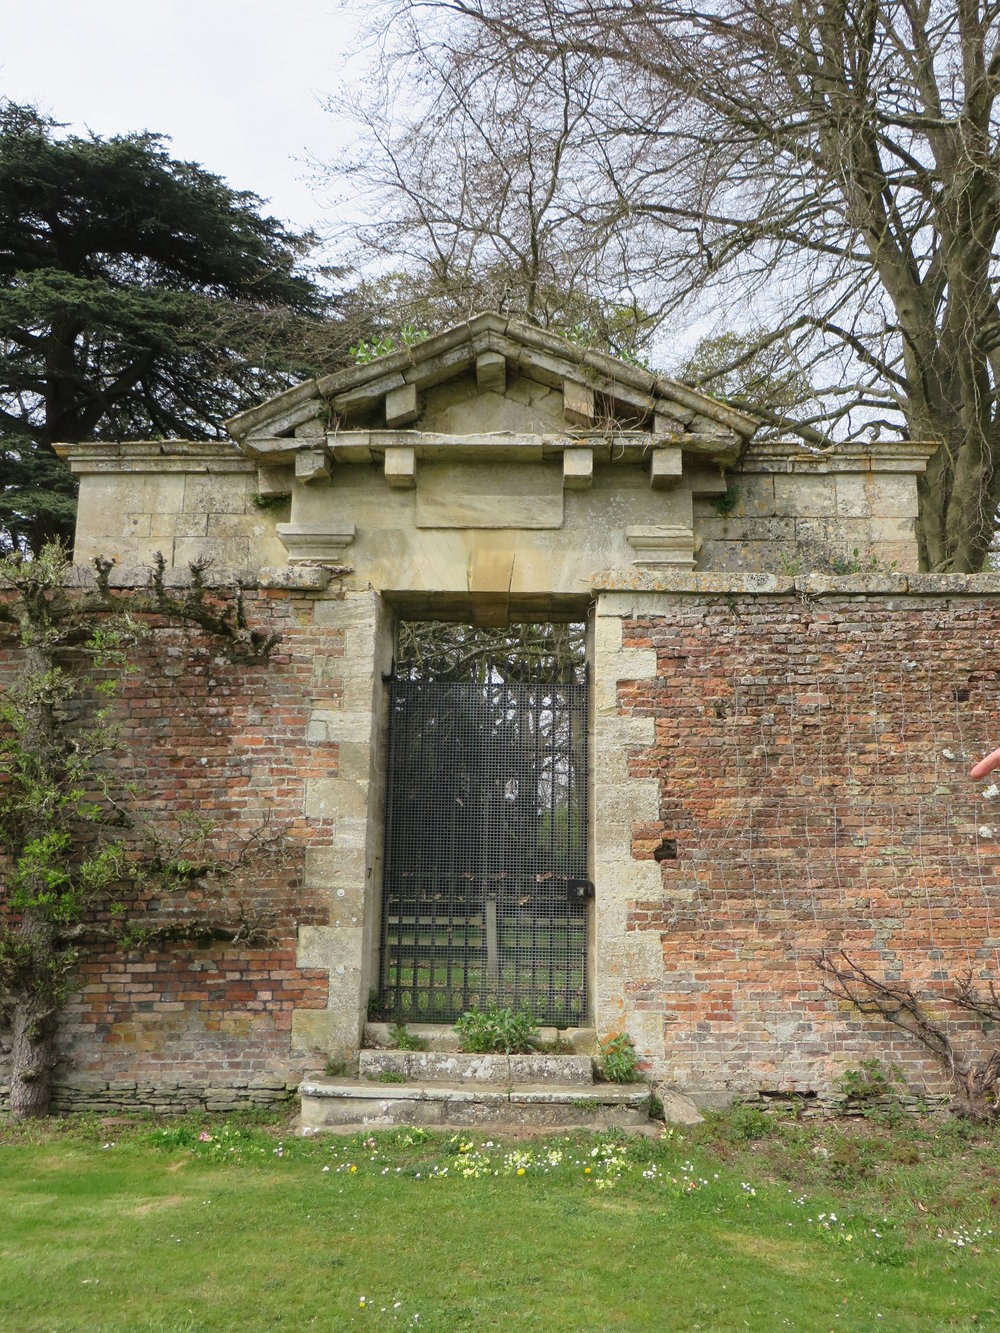 Chamber's Gate, Blenheim Palace